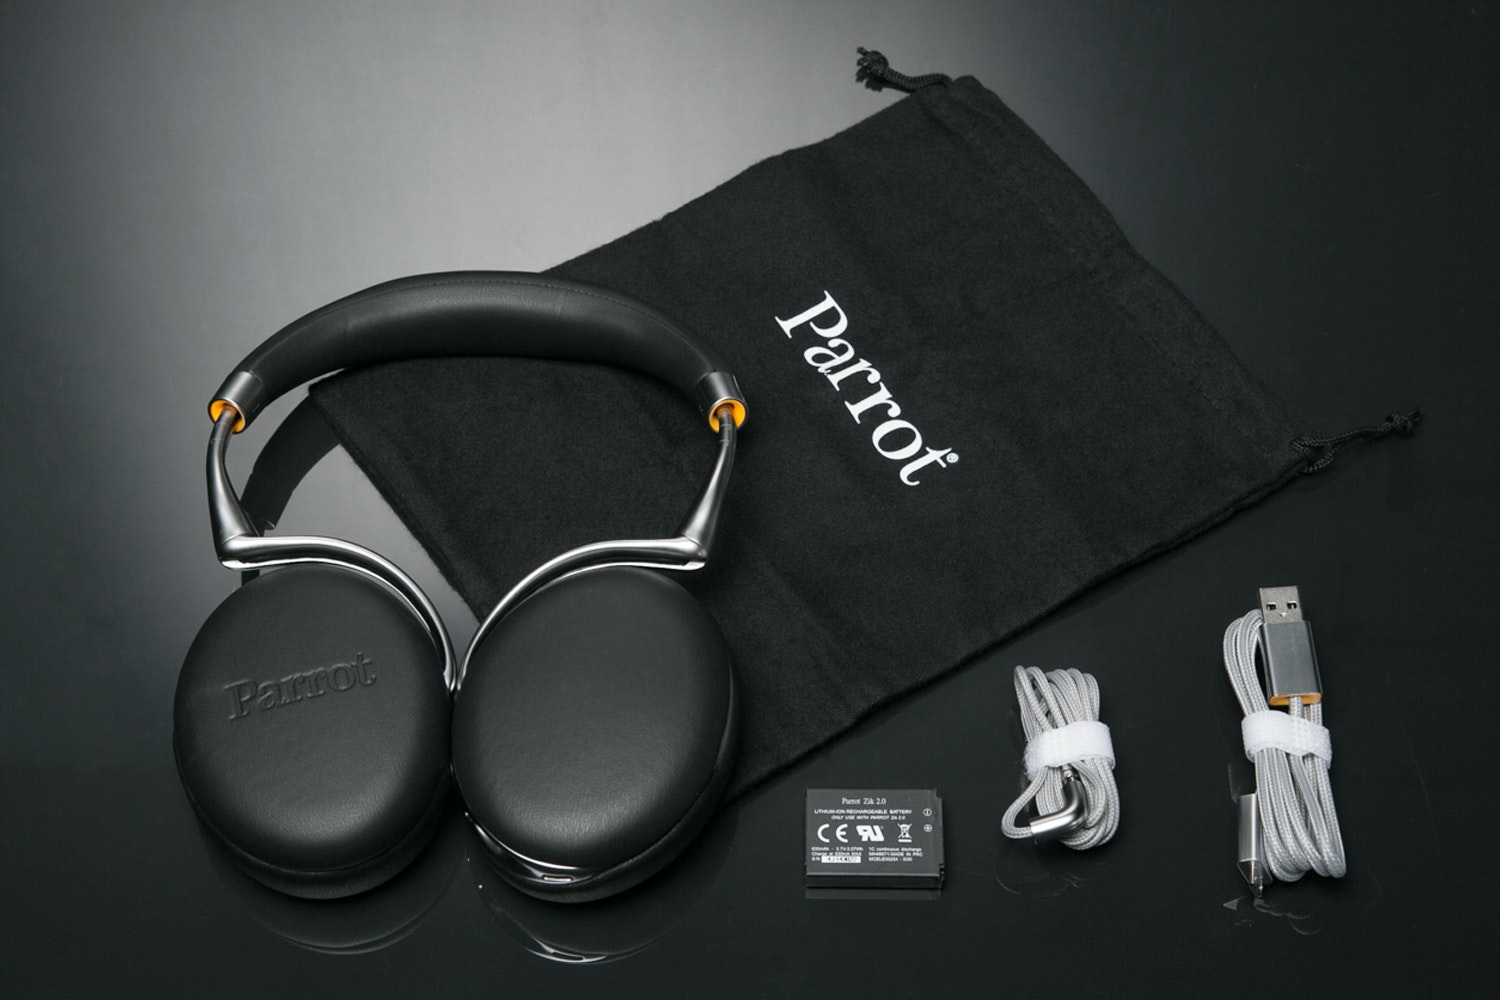 Parrot Zik 2.0 Stereo Bluetooth Headphone